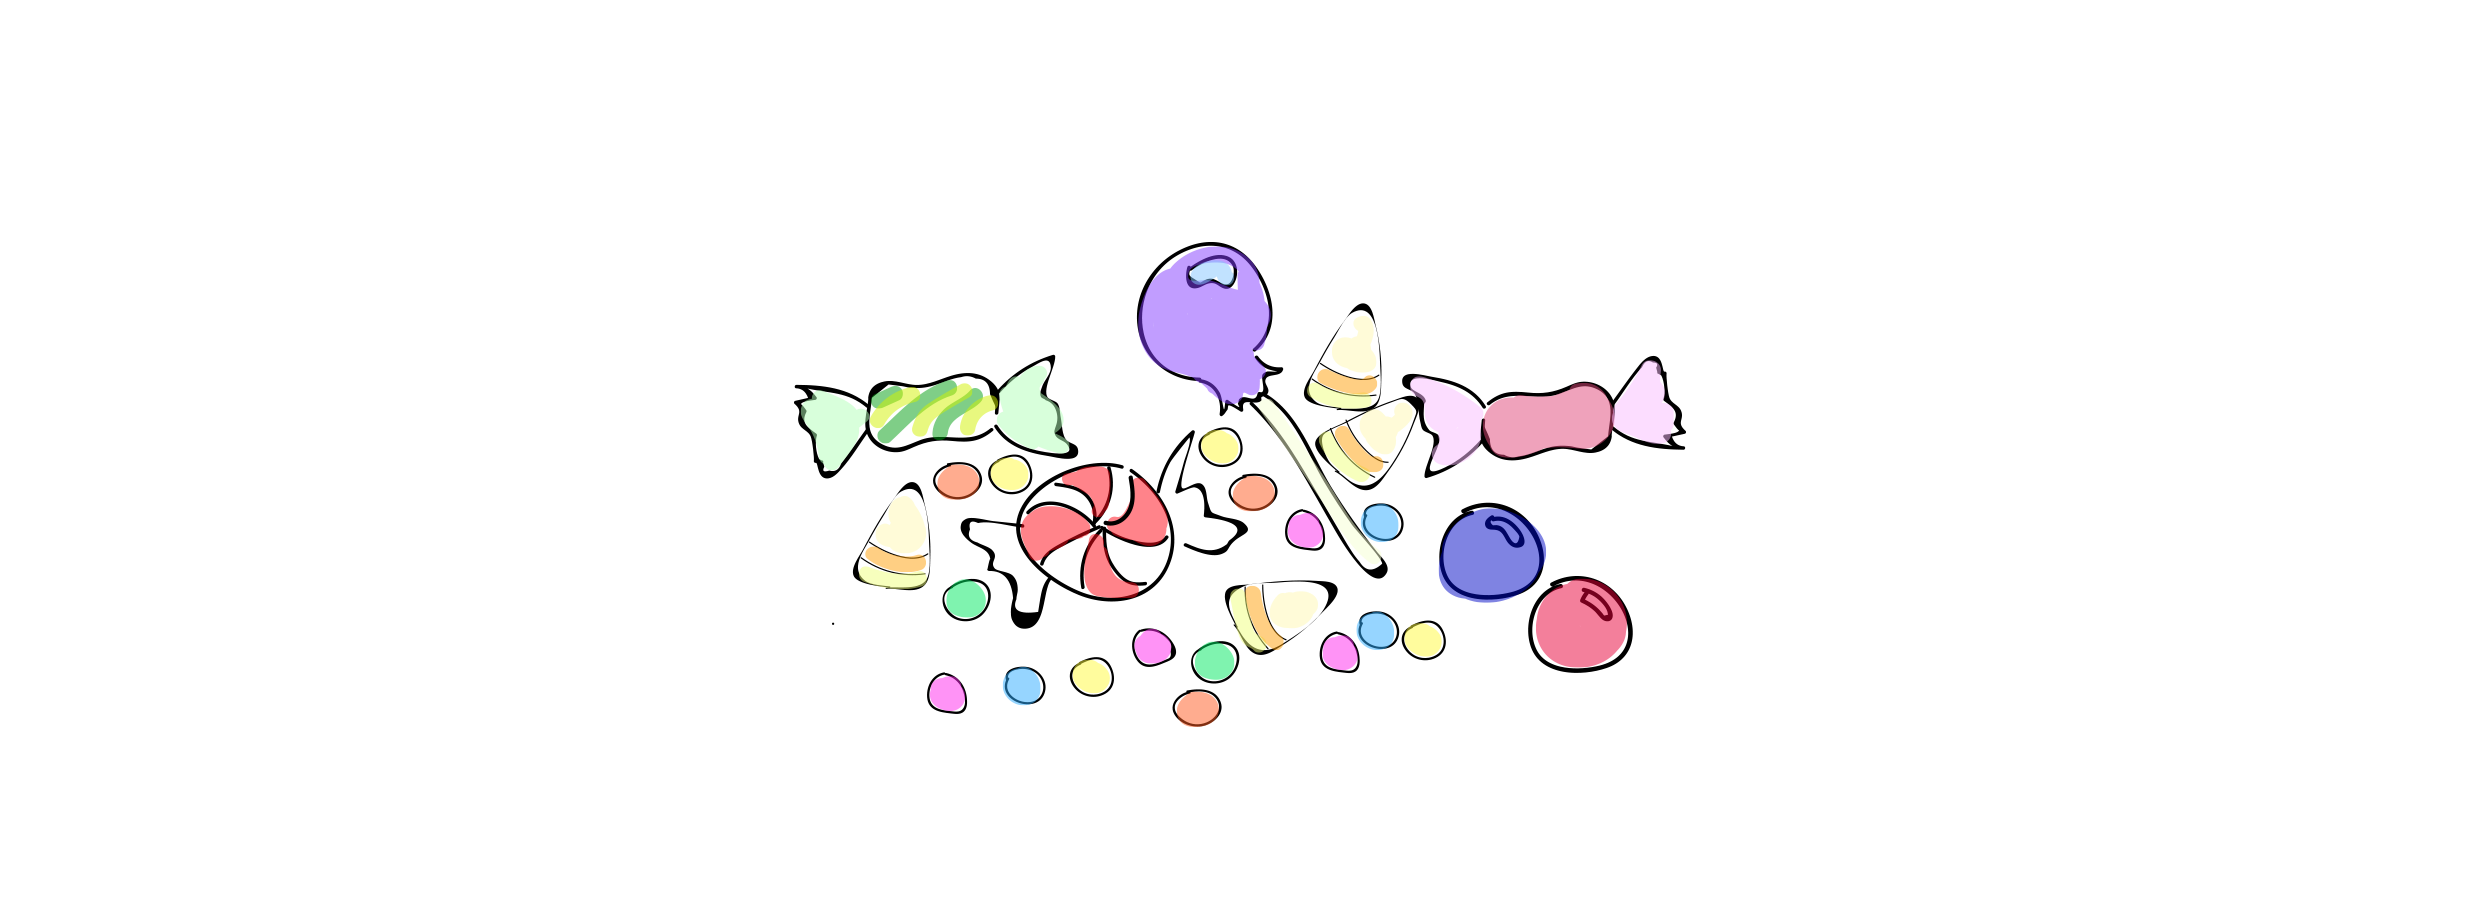 Jelly bean, lollipop and taffy illustration